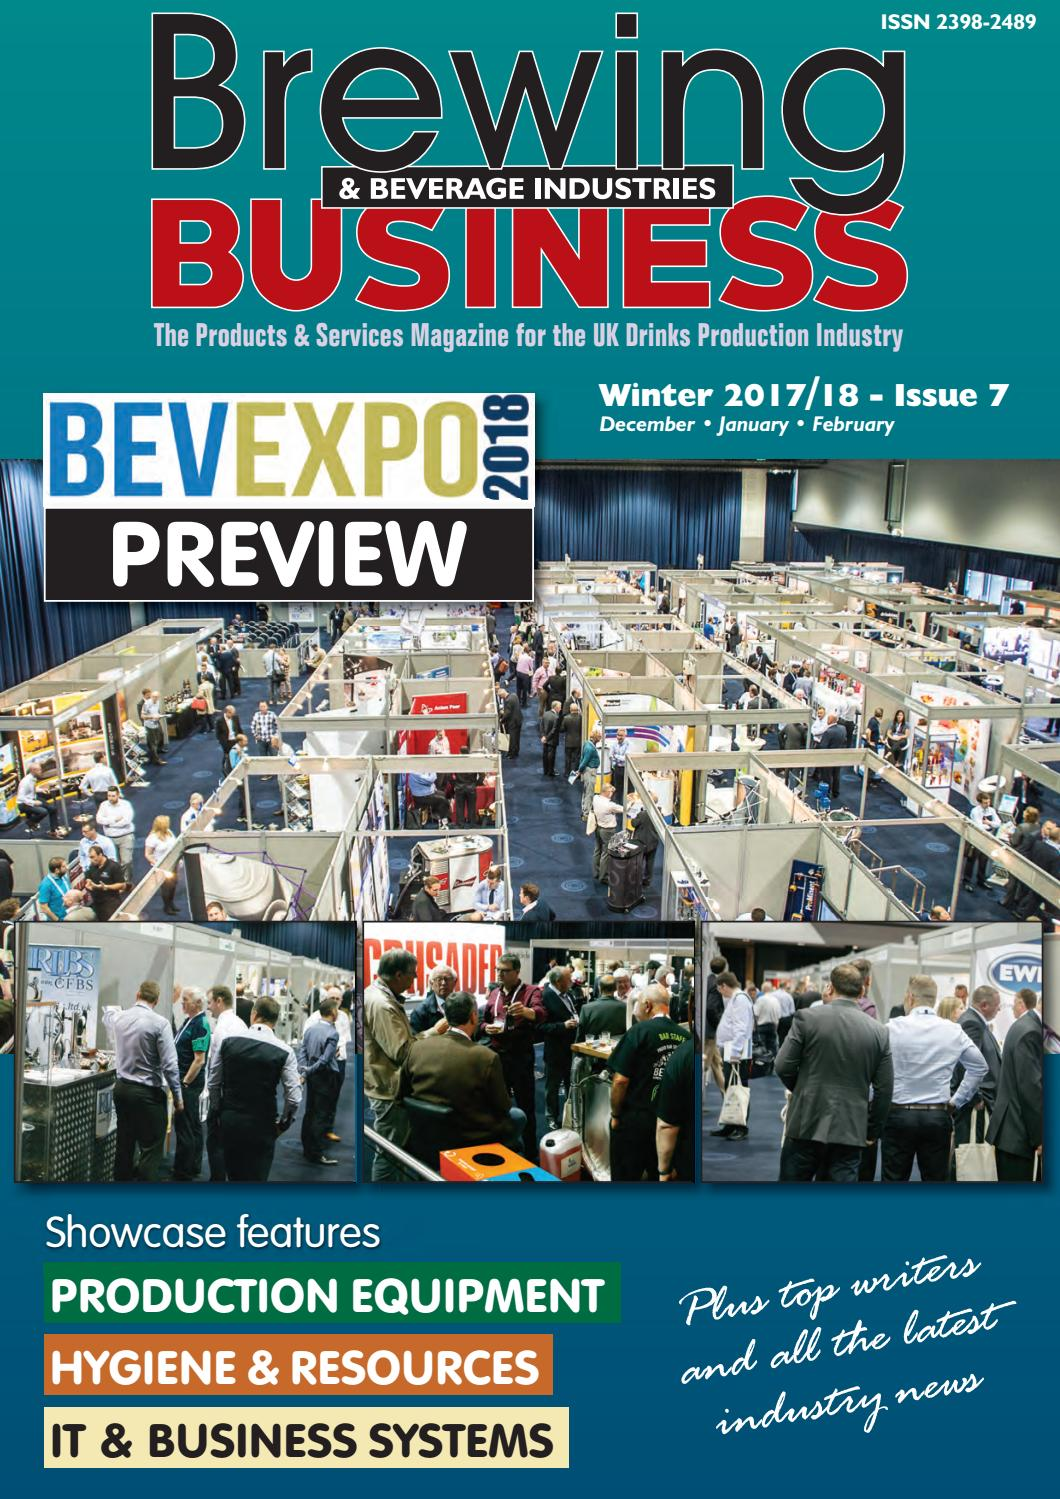 Brewing & Beverage Industries Business (BBIB) - Issue 7 by